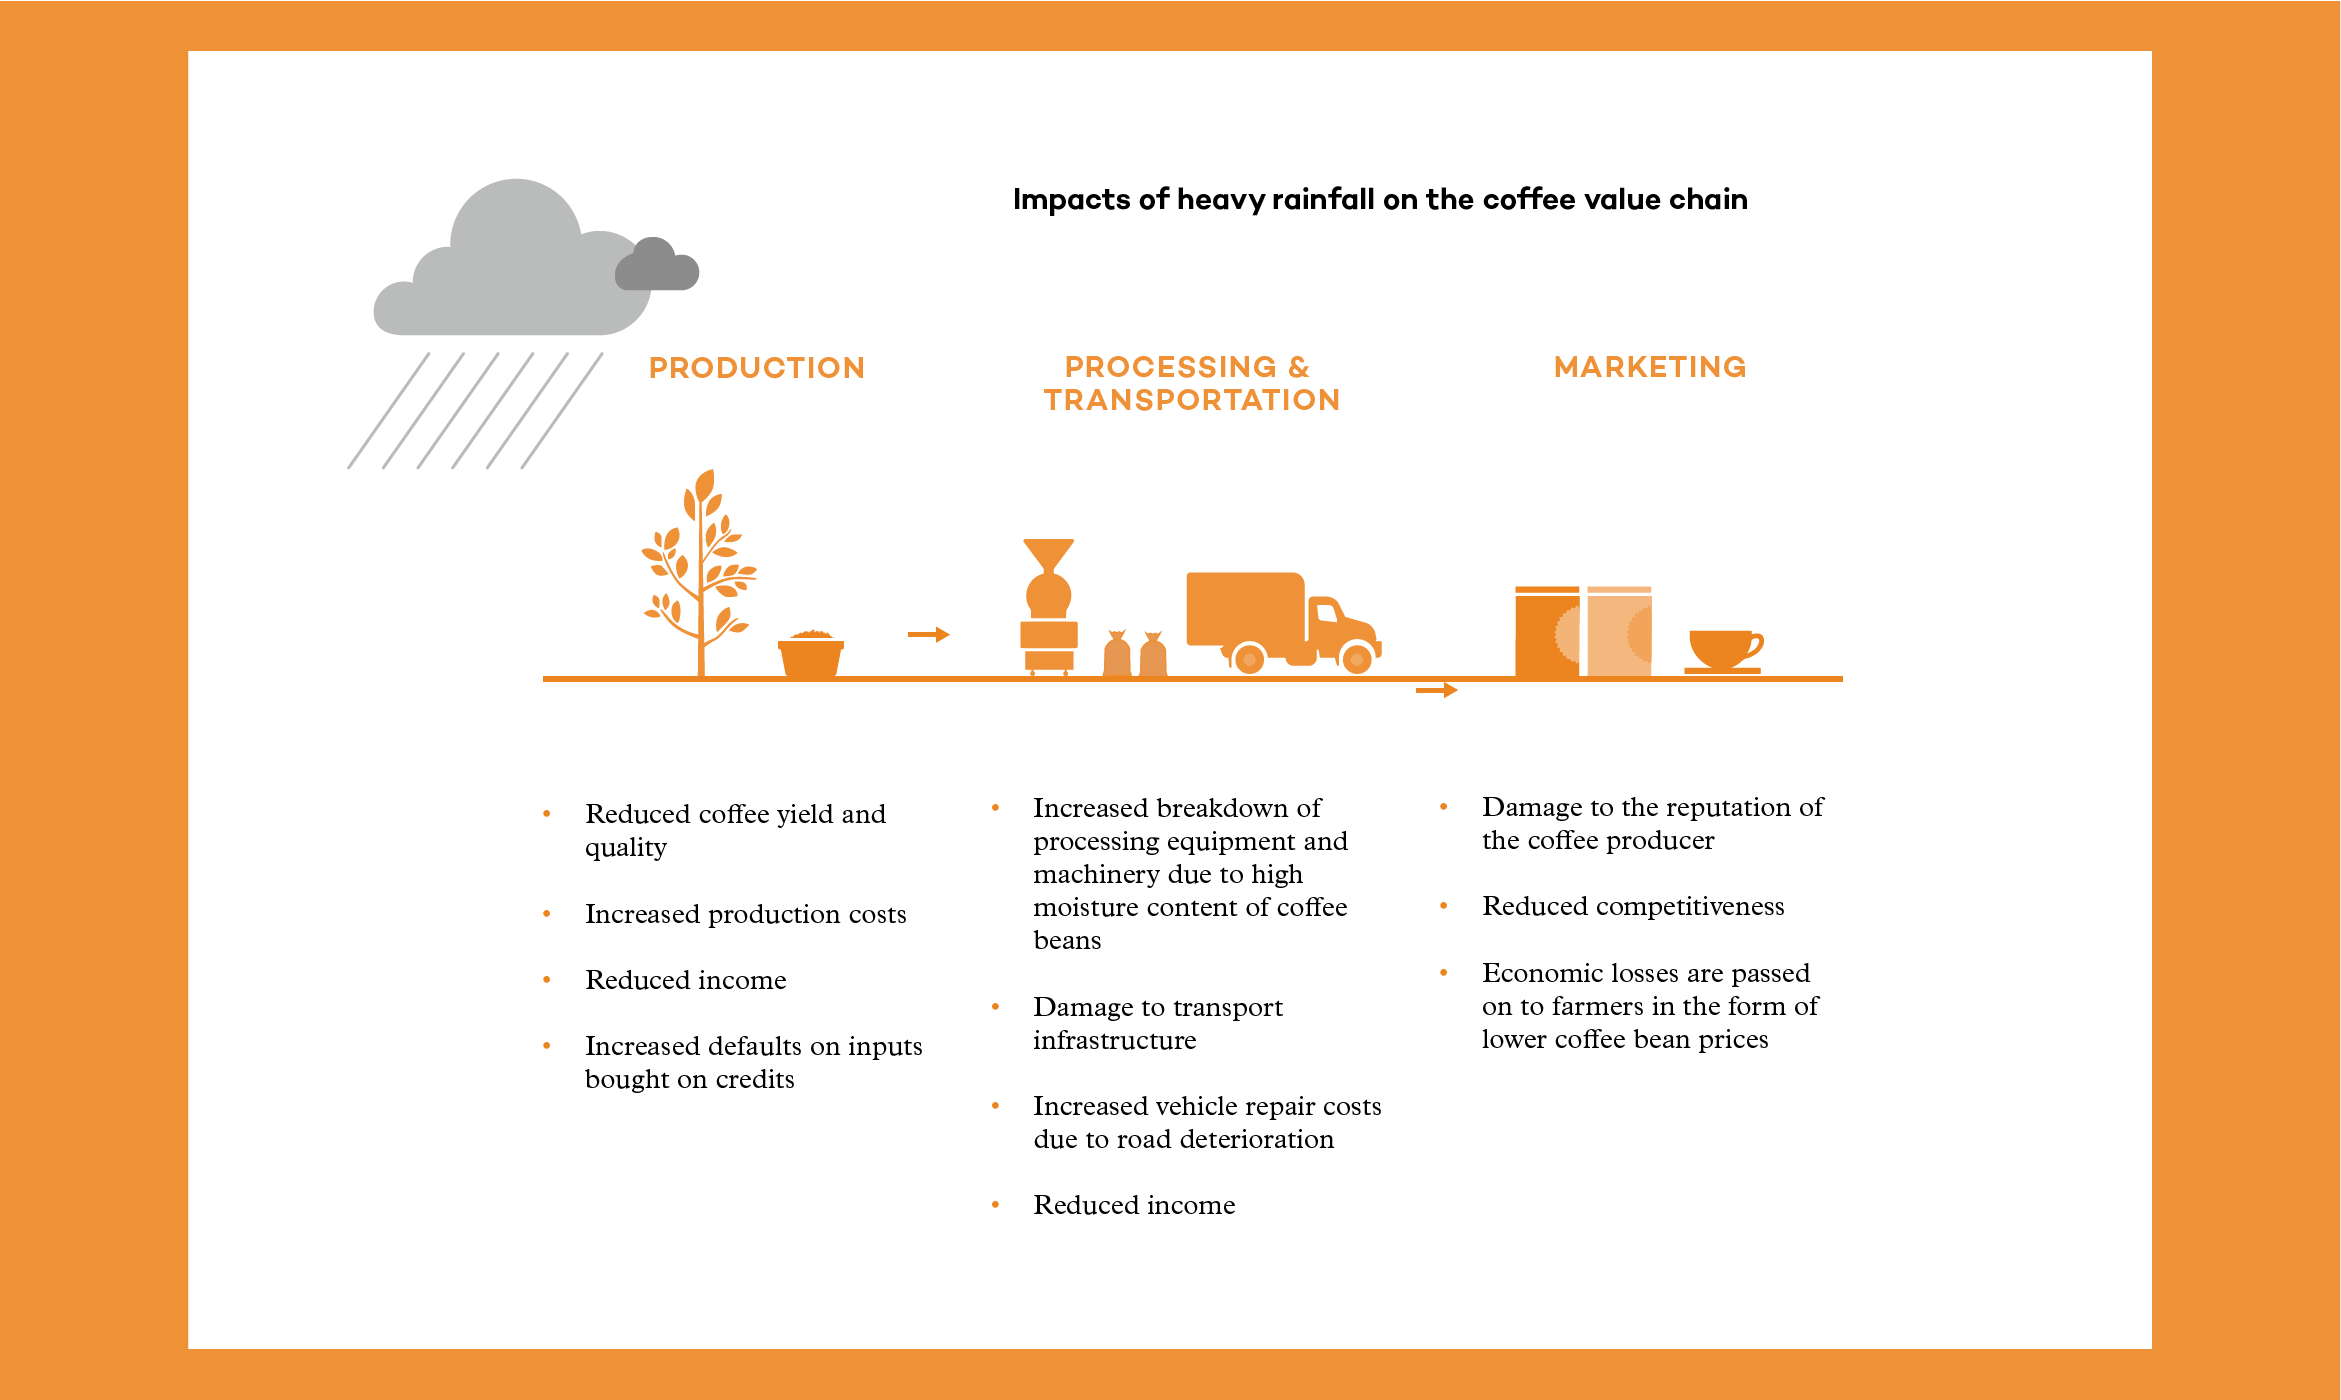 Illustration describing impacts of heavy rainfall on the coffee value chain extracted from the 2015 Annual Report.